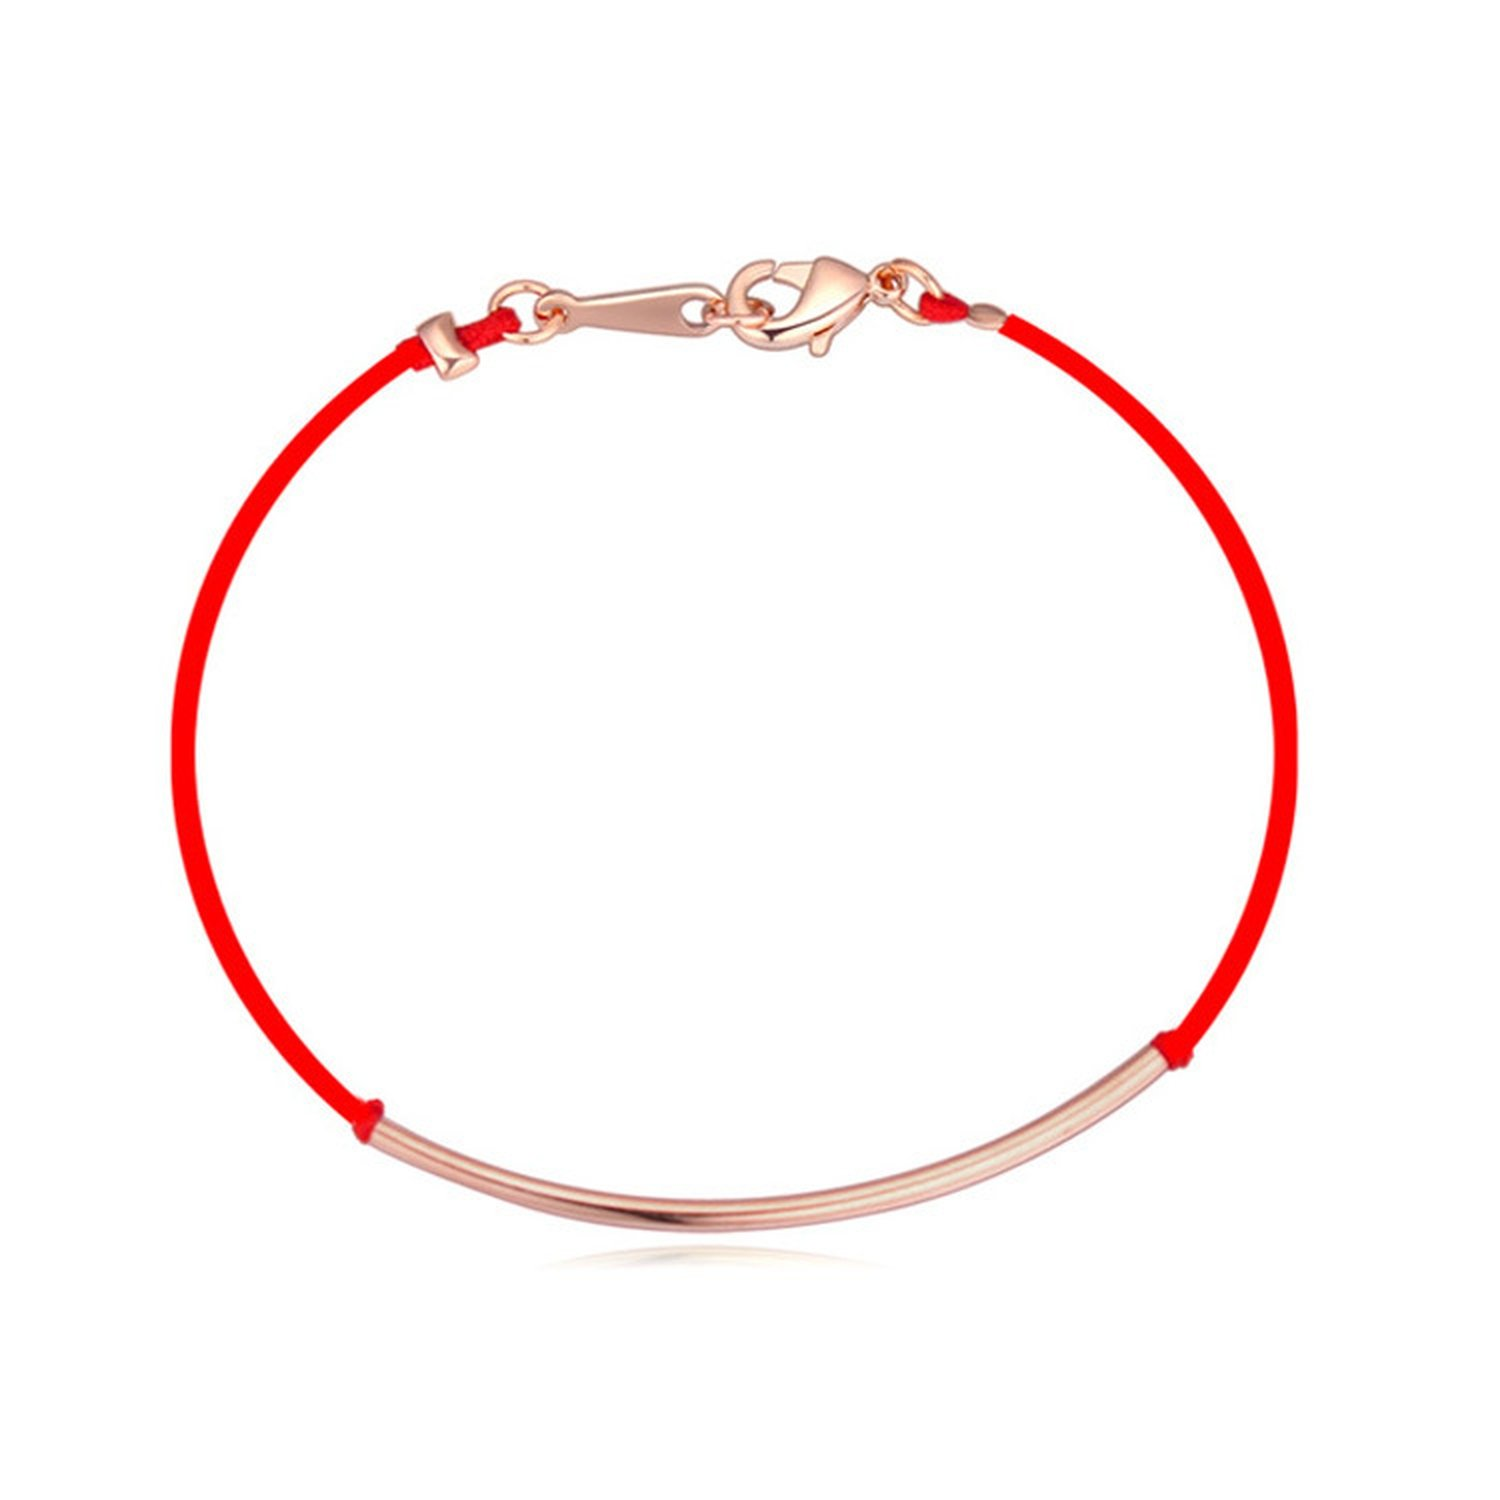 Flower-Bud born red rope braided bracelet high-end gold plated fine jewelry past and present Korean jewelry,Rose Gold